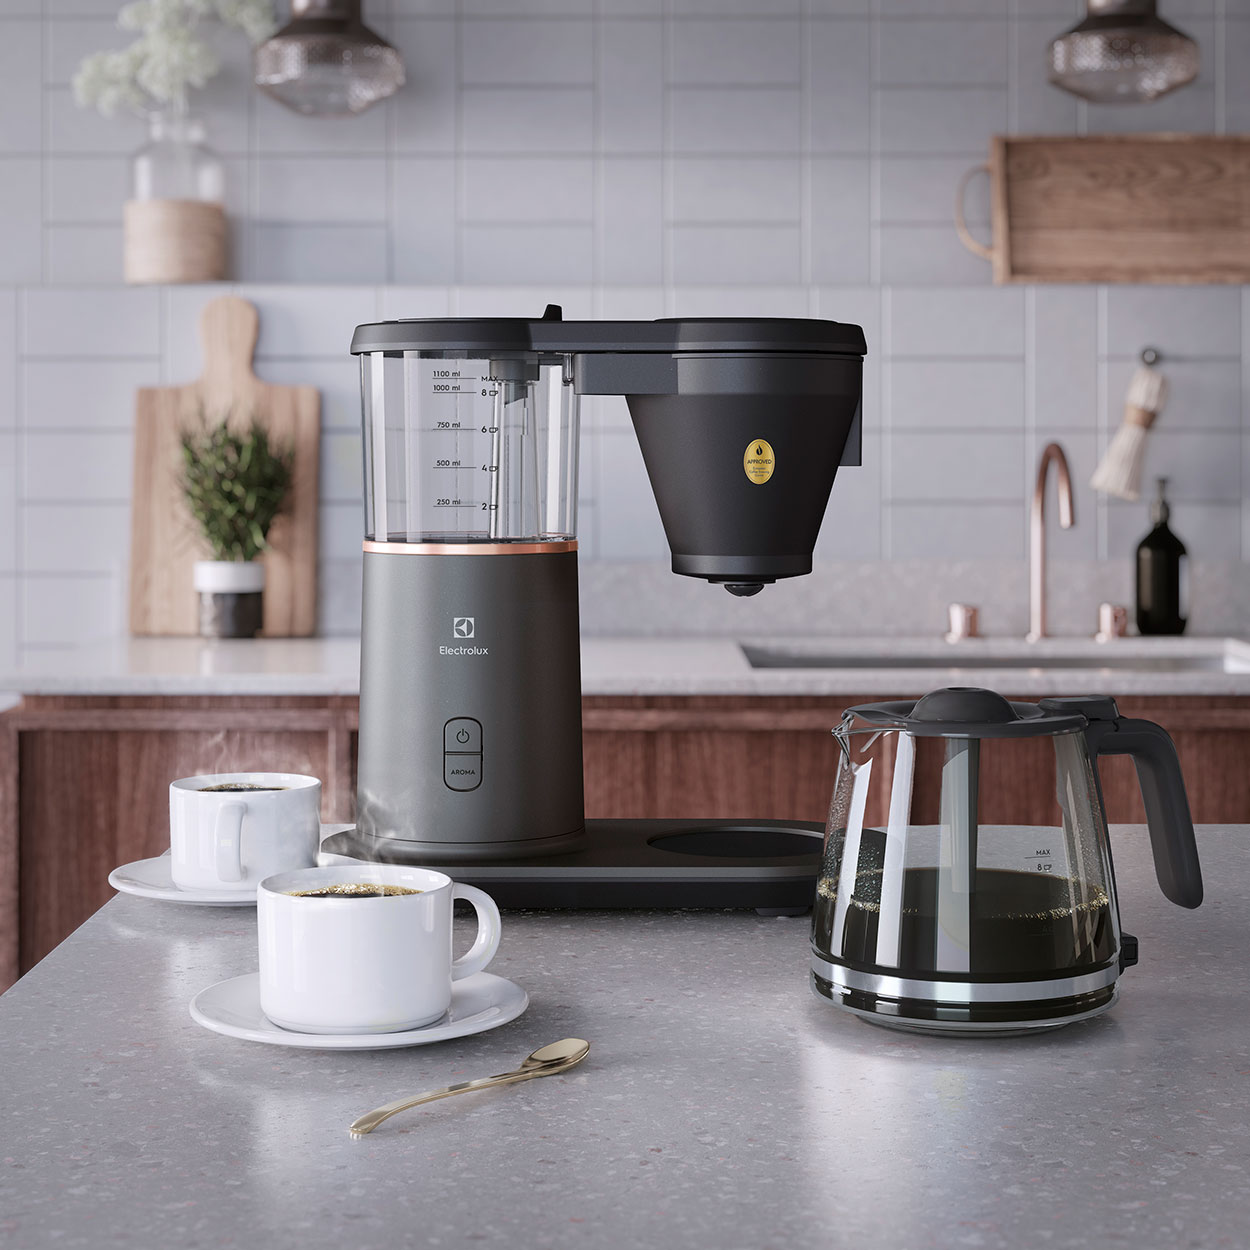 Electrolux home Kaffebryggare